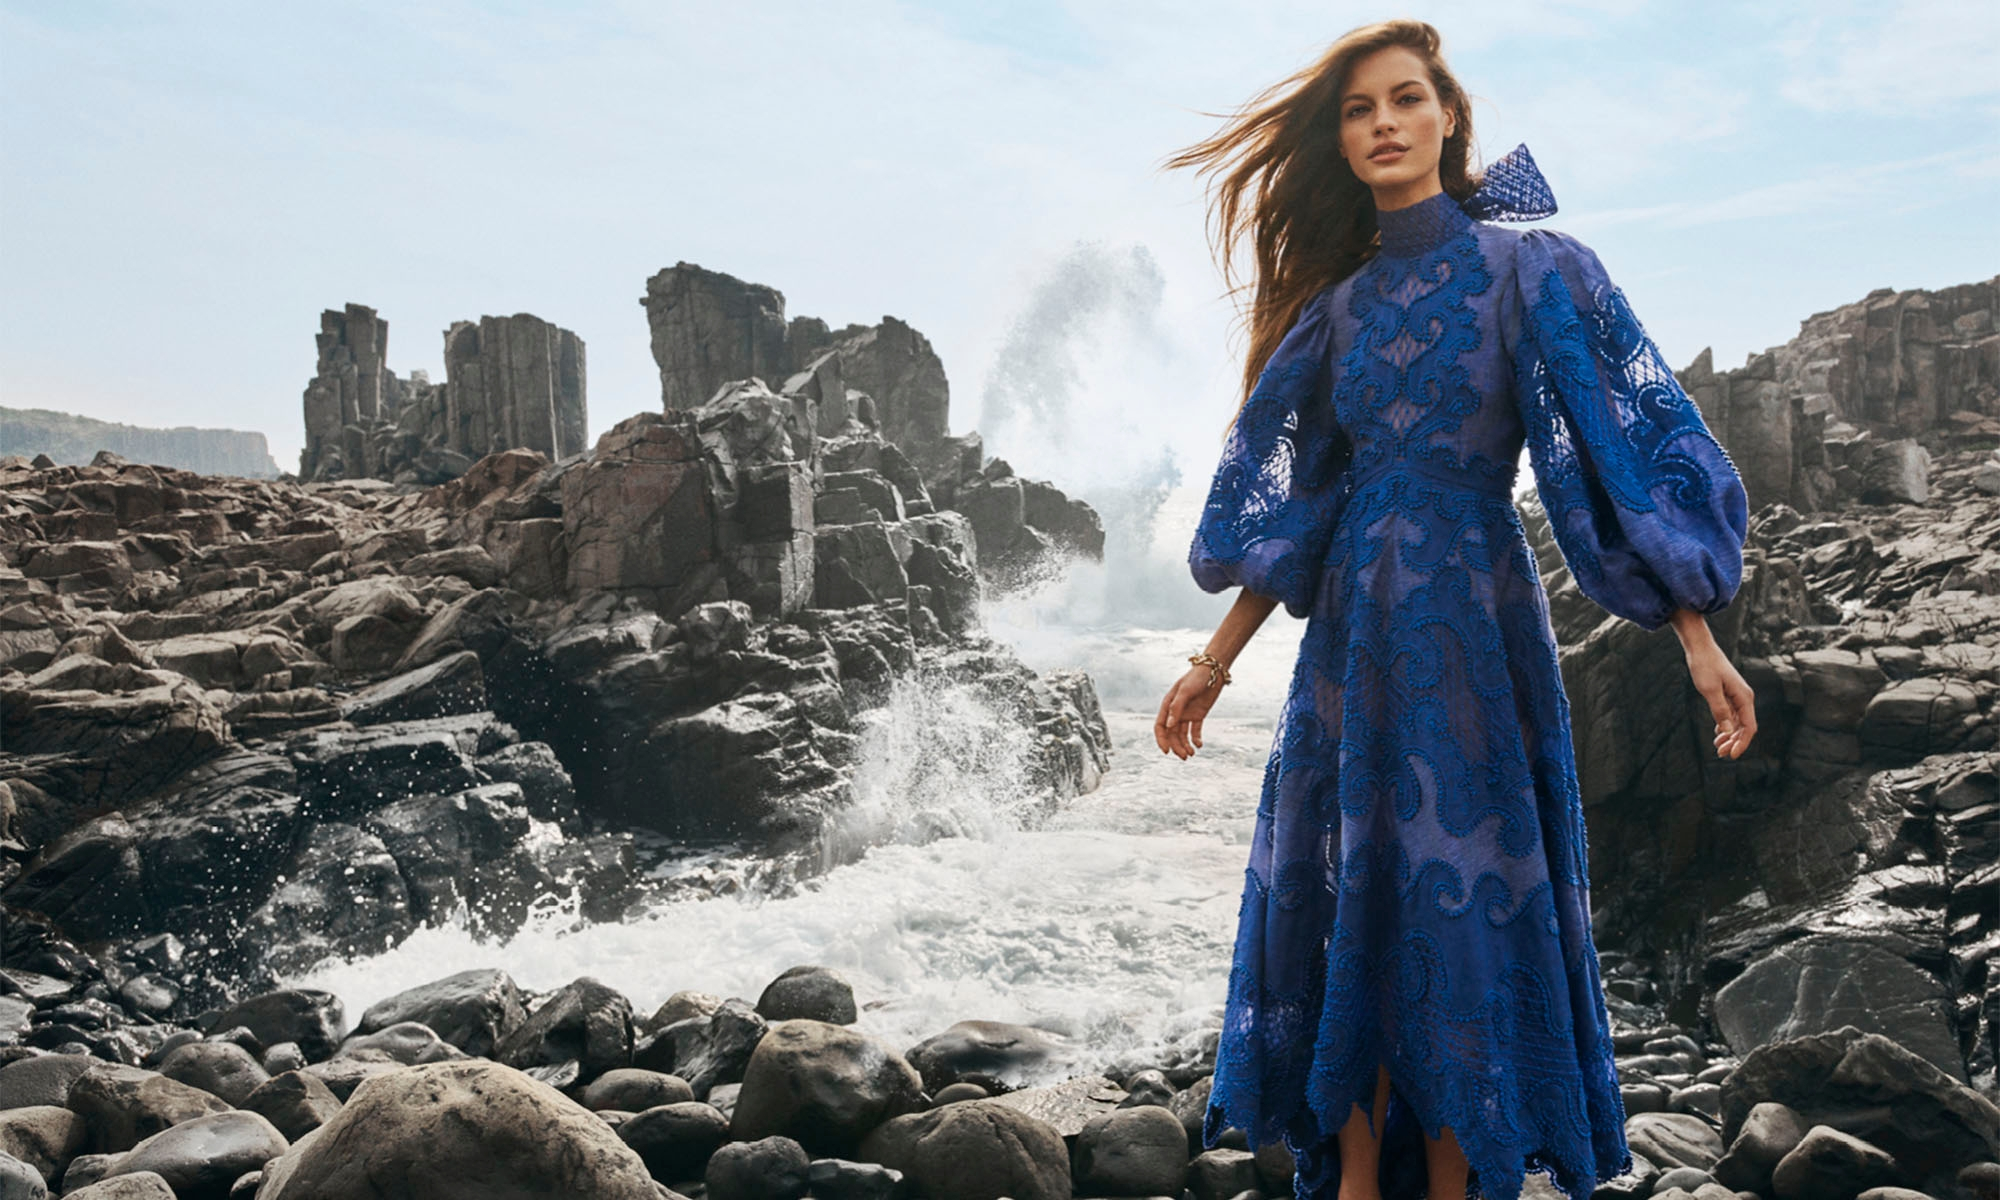 WOMAN STANDING ON THE ROCKS BY THE OCEAN WEARING 7794DBRI Brightside Knot Embroidered Gown, Blue